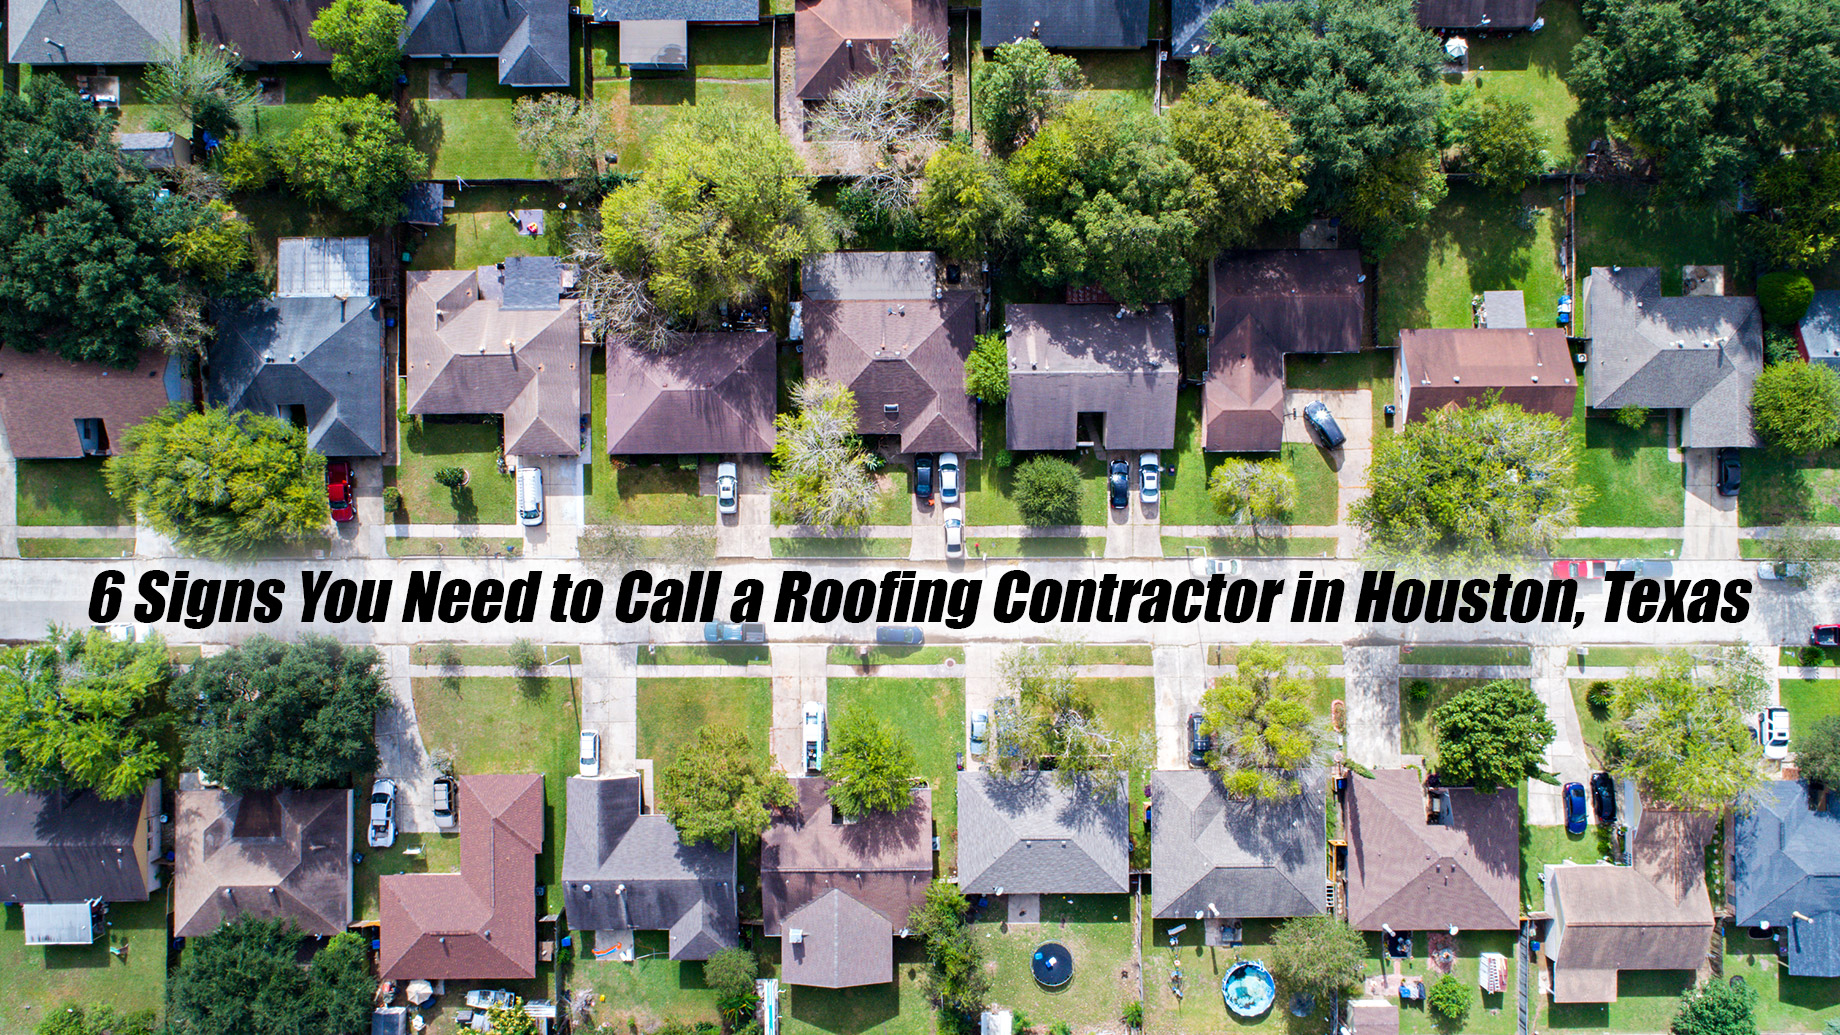 6 Signs You Need to Call a Roofing Contractor in Houston, Texas